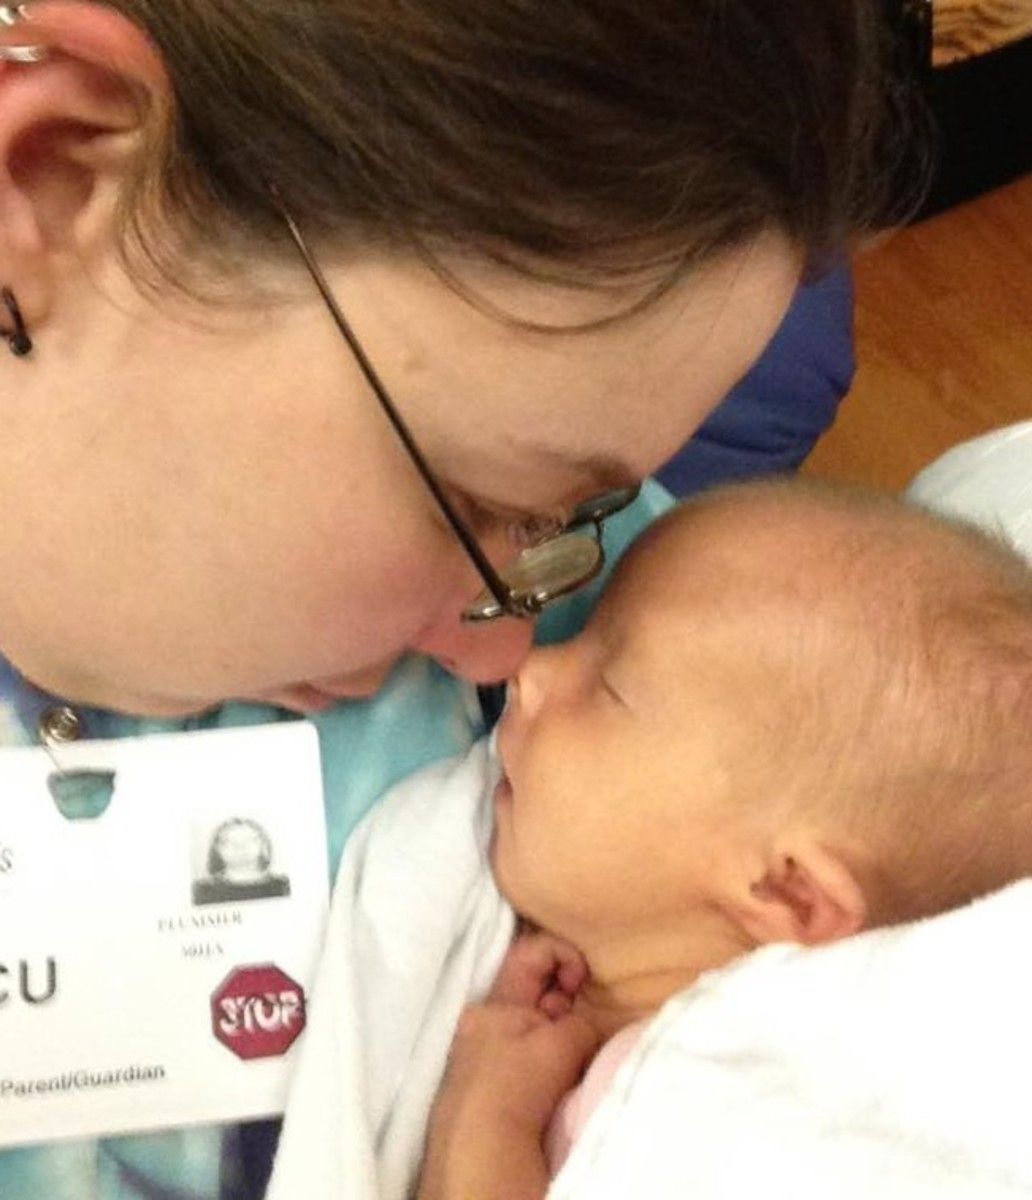 Getting Good Medical Care With Self-Advocacy